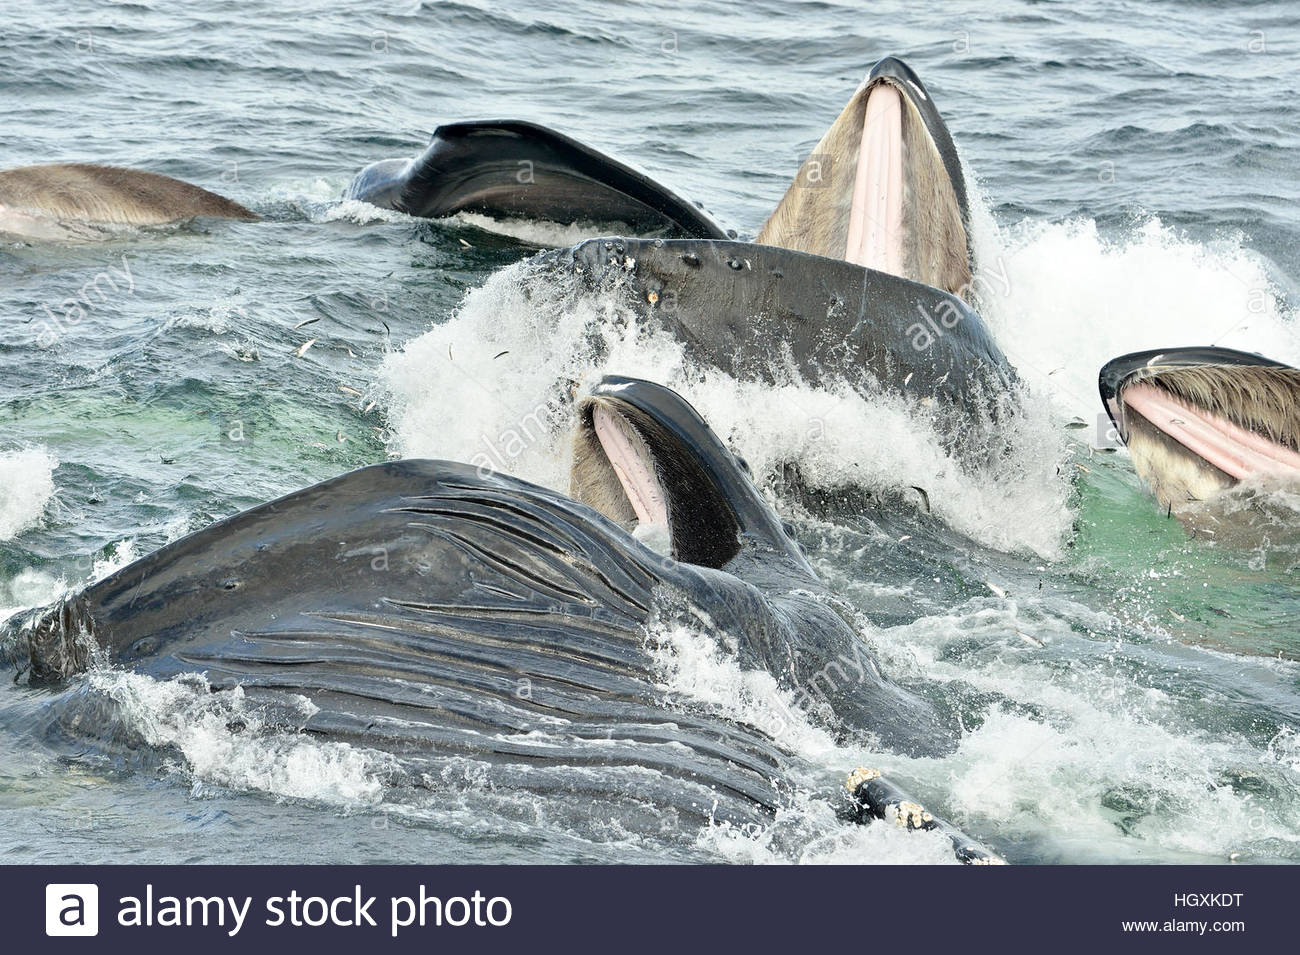 Close-up of the baleen's of Humpback whales breaking the surface as they bubble net feed in the waters near - Stock Image